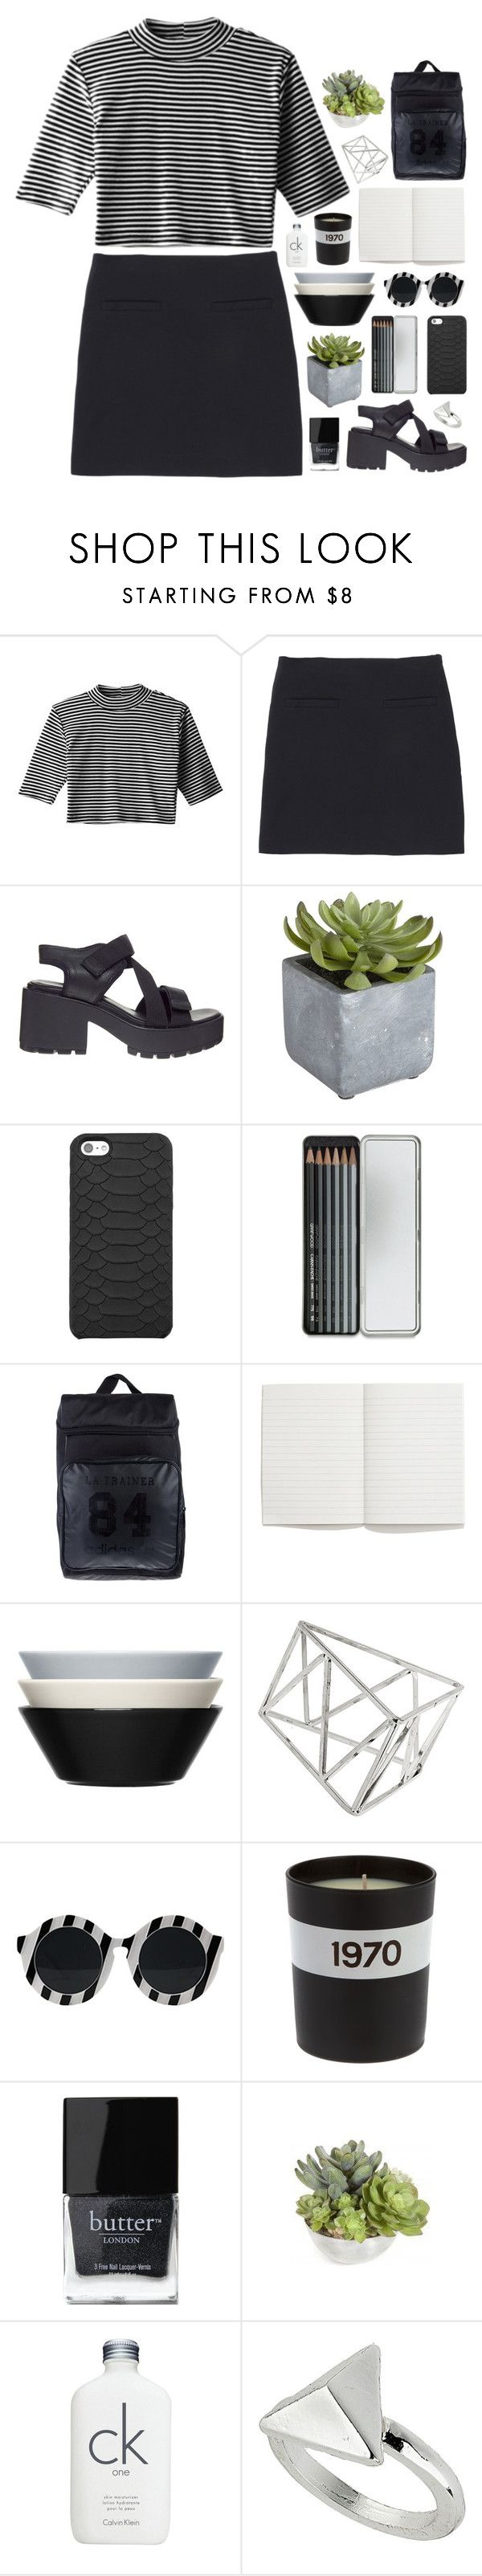 """LIAM JAMES PAYNE"" by feels-like-snow-in-september ❤ liked on Polyvore featuring Uniqlo, Vagabond, Pier 1 Imports, GiGi New York, Caran D'Ache, adidas Originals, Madewell, iittala, Topshop and Bella Freud"